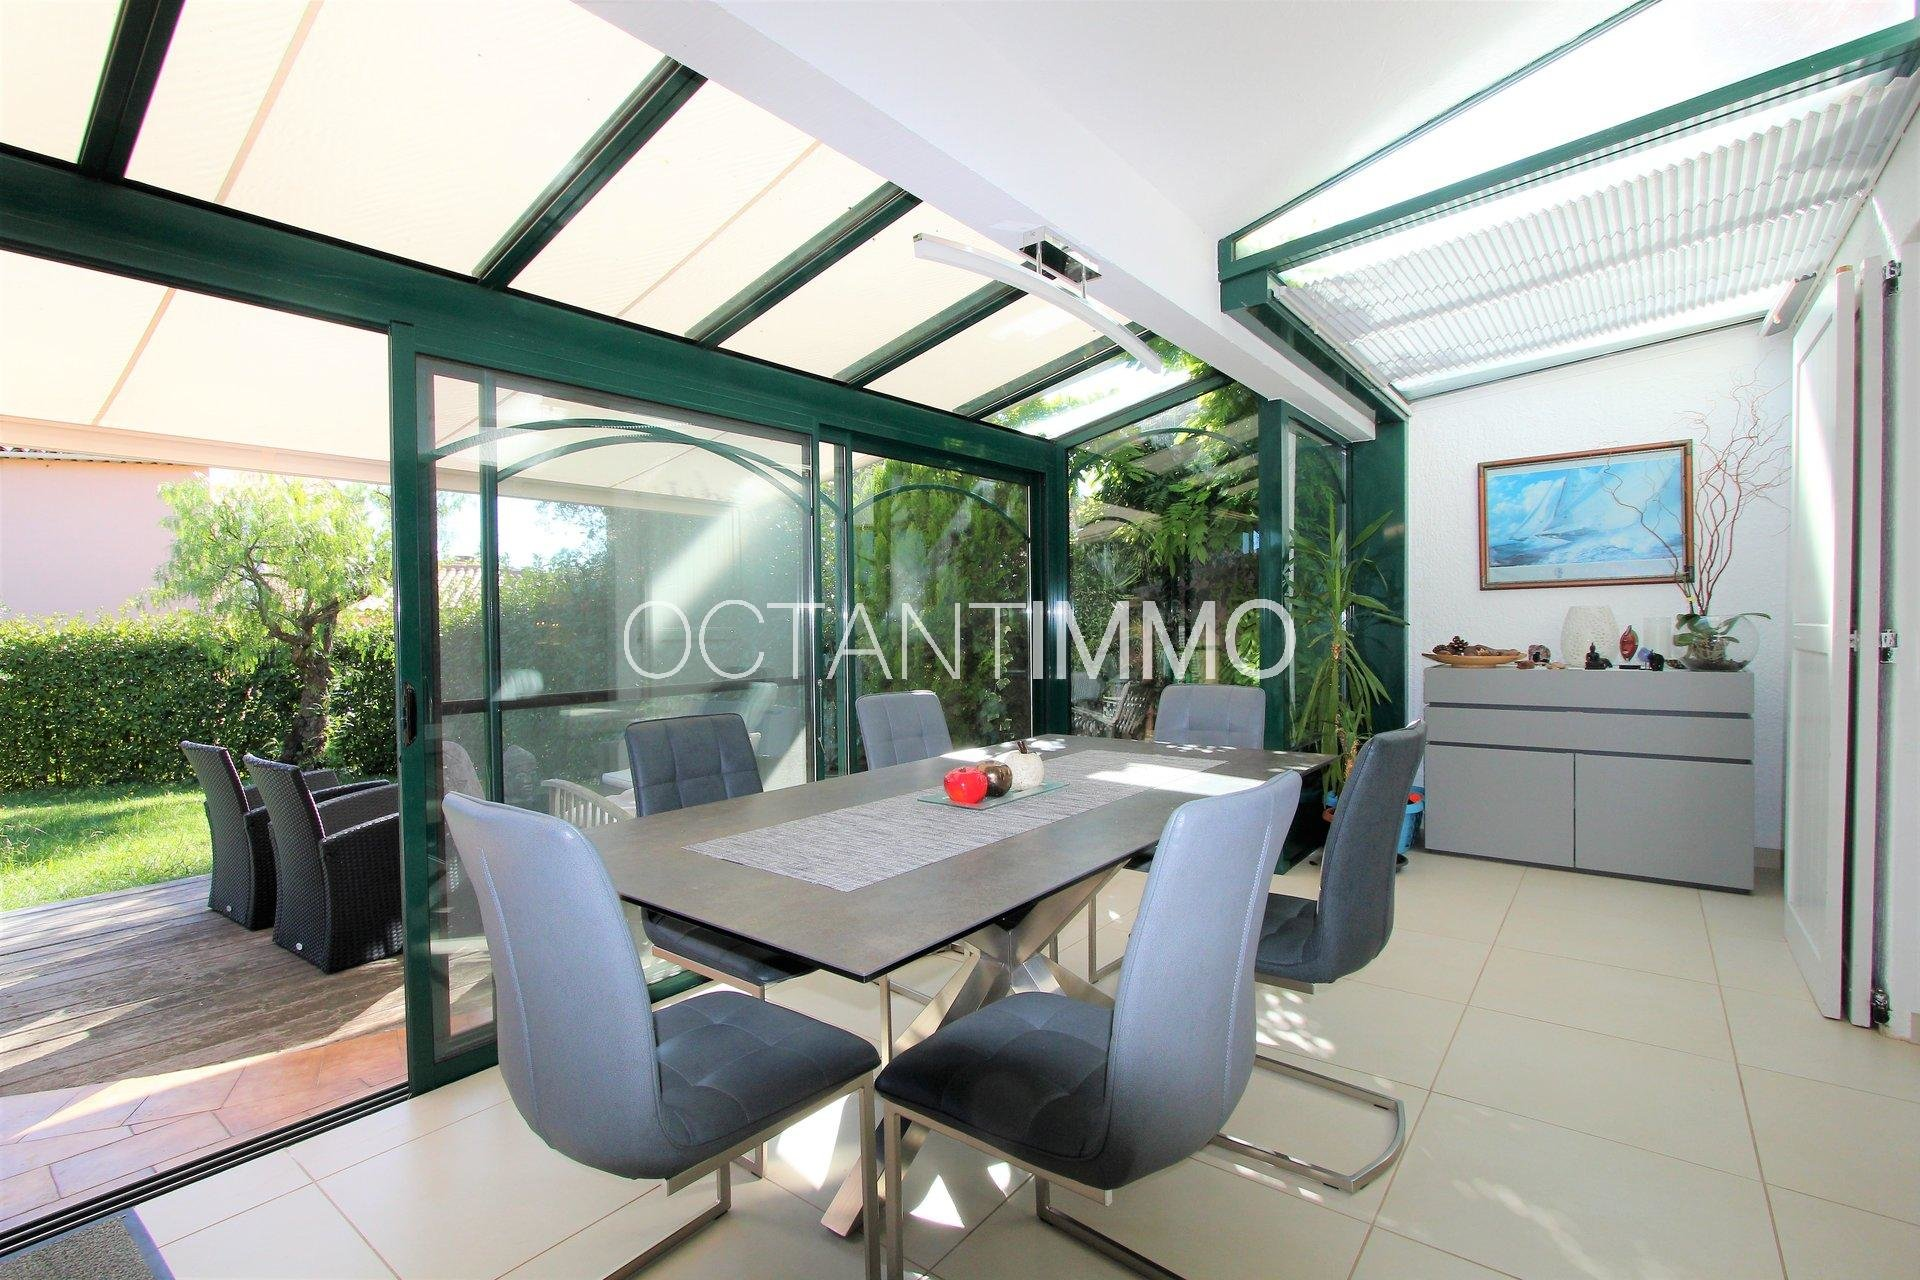 MOUGINS 4 rooms villa in excellent condition - 560.000 €